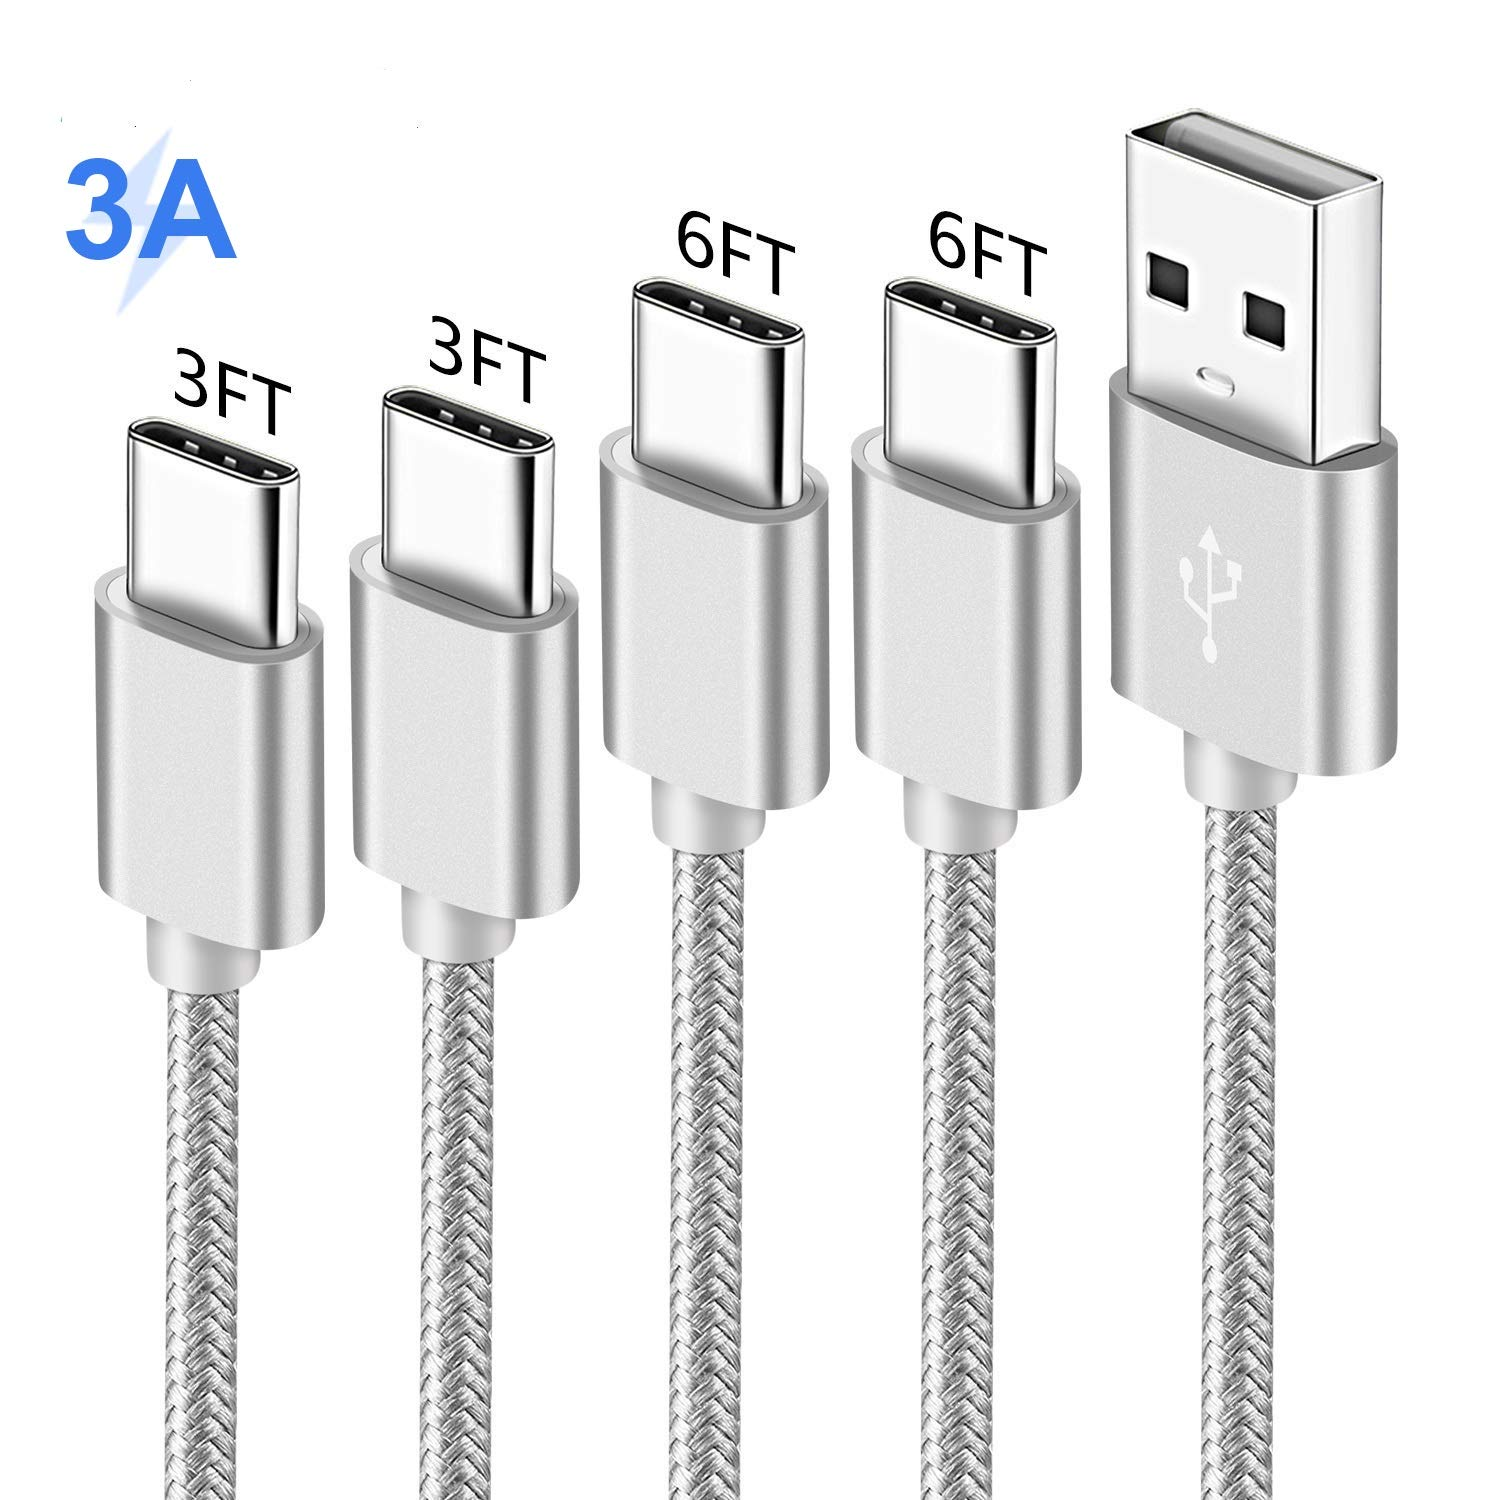 Charger Cord for Samsung S10 S10E S8 S9 10 9 Edge Plus,A20 A10E A50,Galaxy Tab S3 S4,Nokia 7.1 6.1 7,Oneplus 6T,Asus Zenfone V Live 5 5Z,USB Type C ...